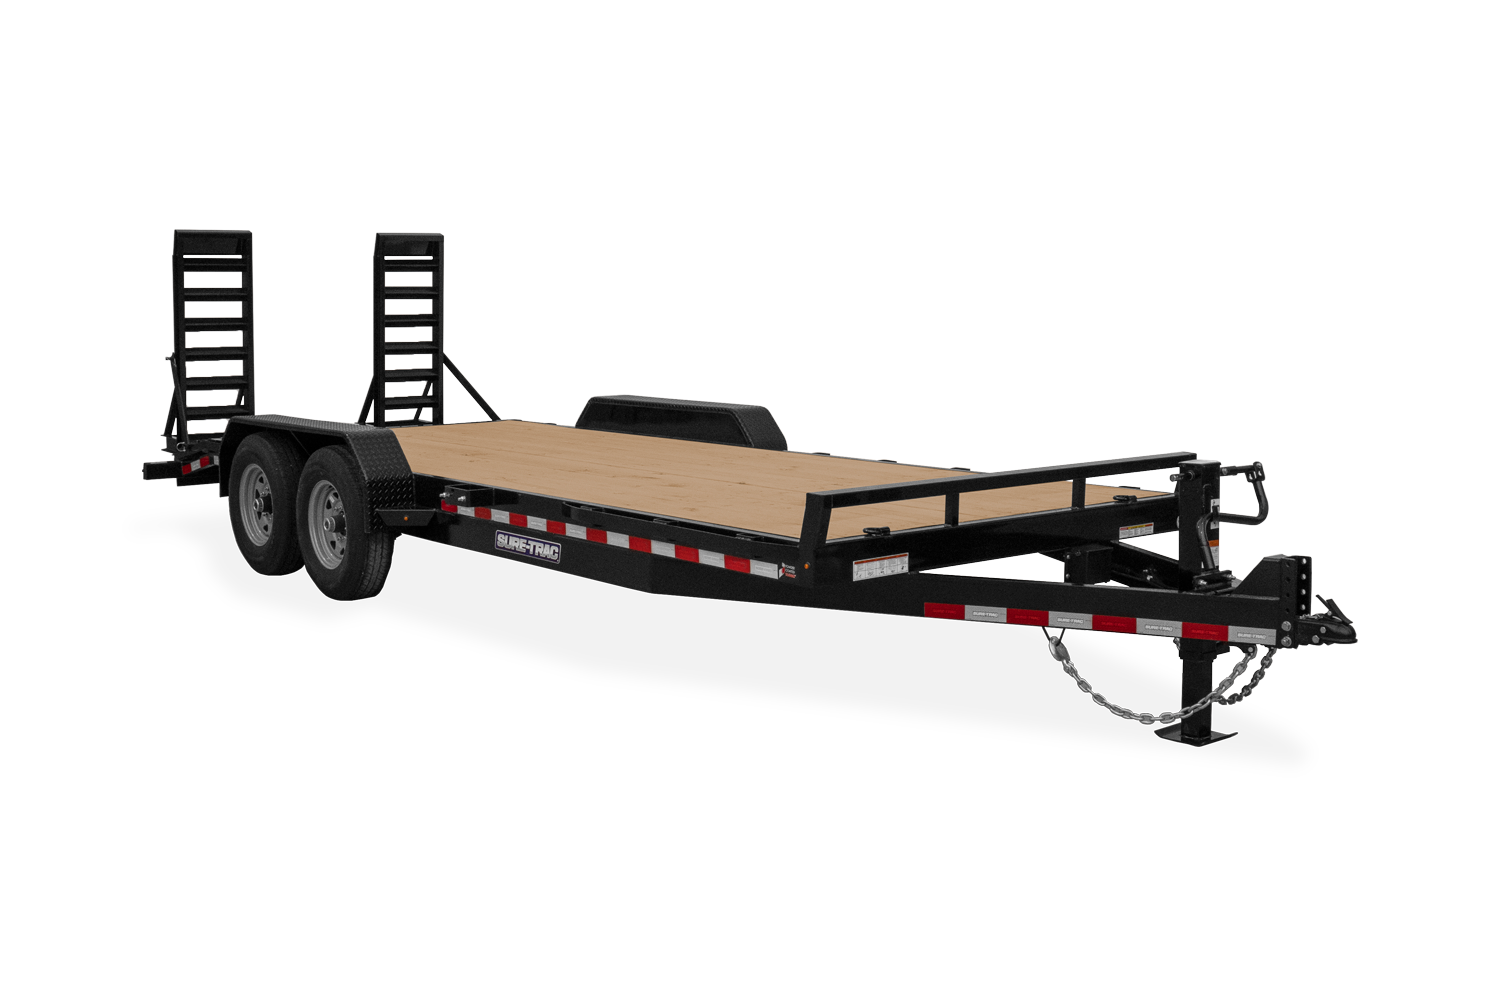 Categorize the Equipment Trailers